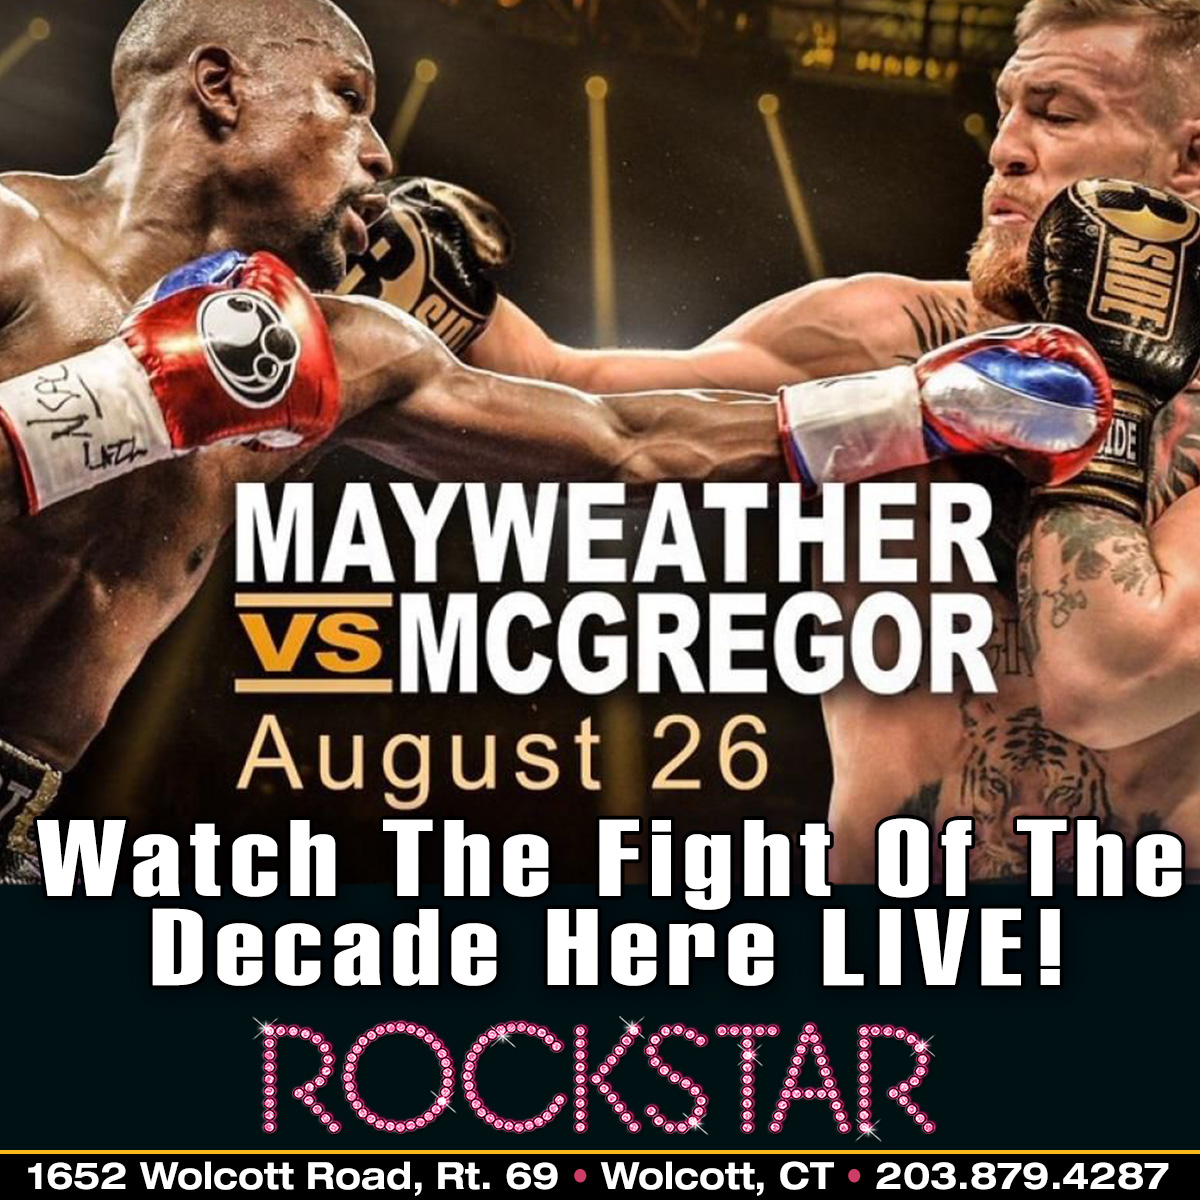 Mayweather Vs McGregor | Rockstar Strip Club Connecticut